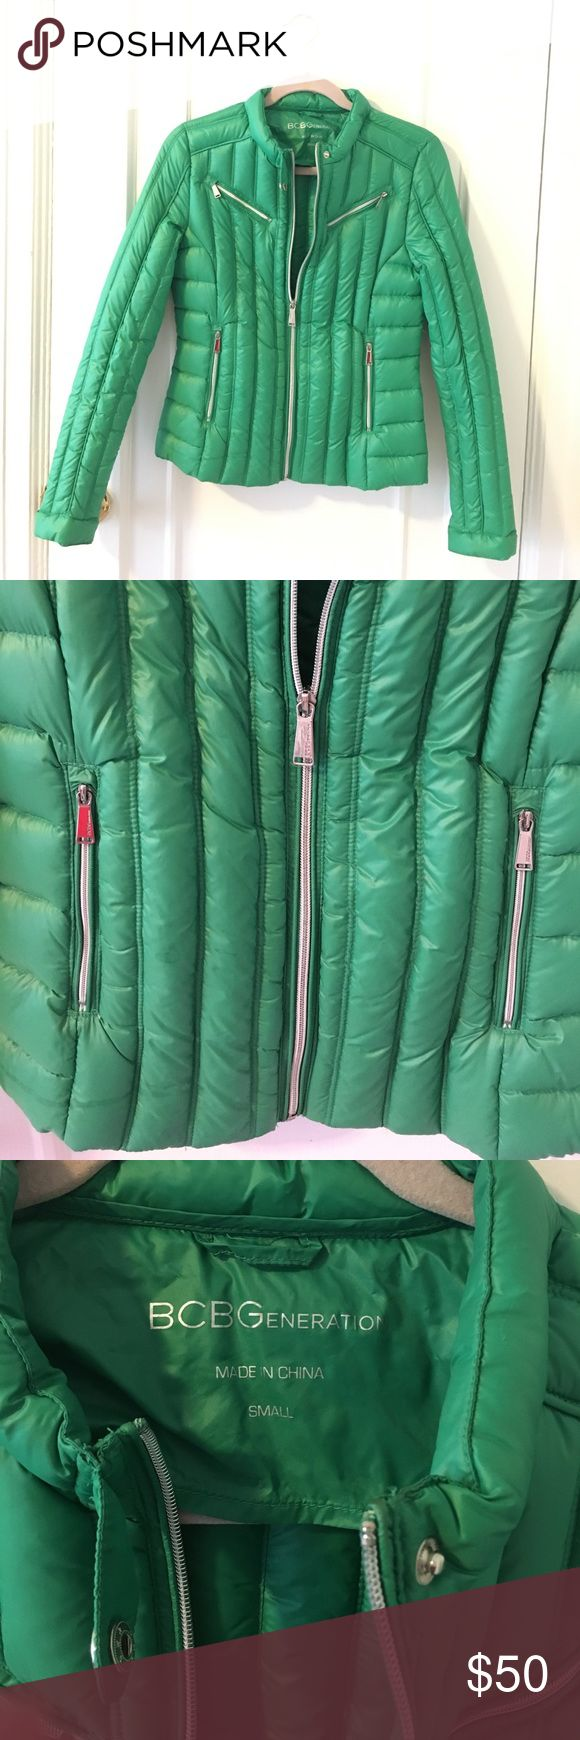 Green BCBG Jacket This jacket is so soft and in great condition! Worn once on St. Patrick's Day :) I love the bright silver zippers! BCBGeneration Jackets & Coats Puffers